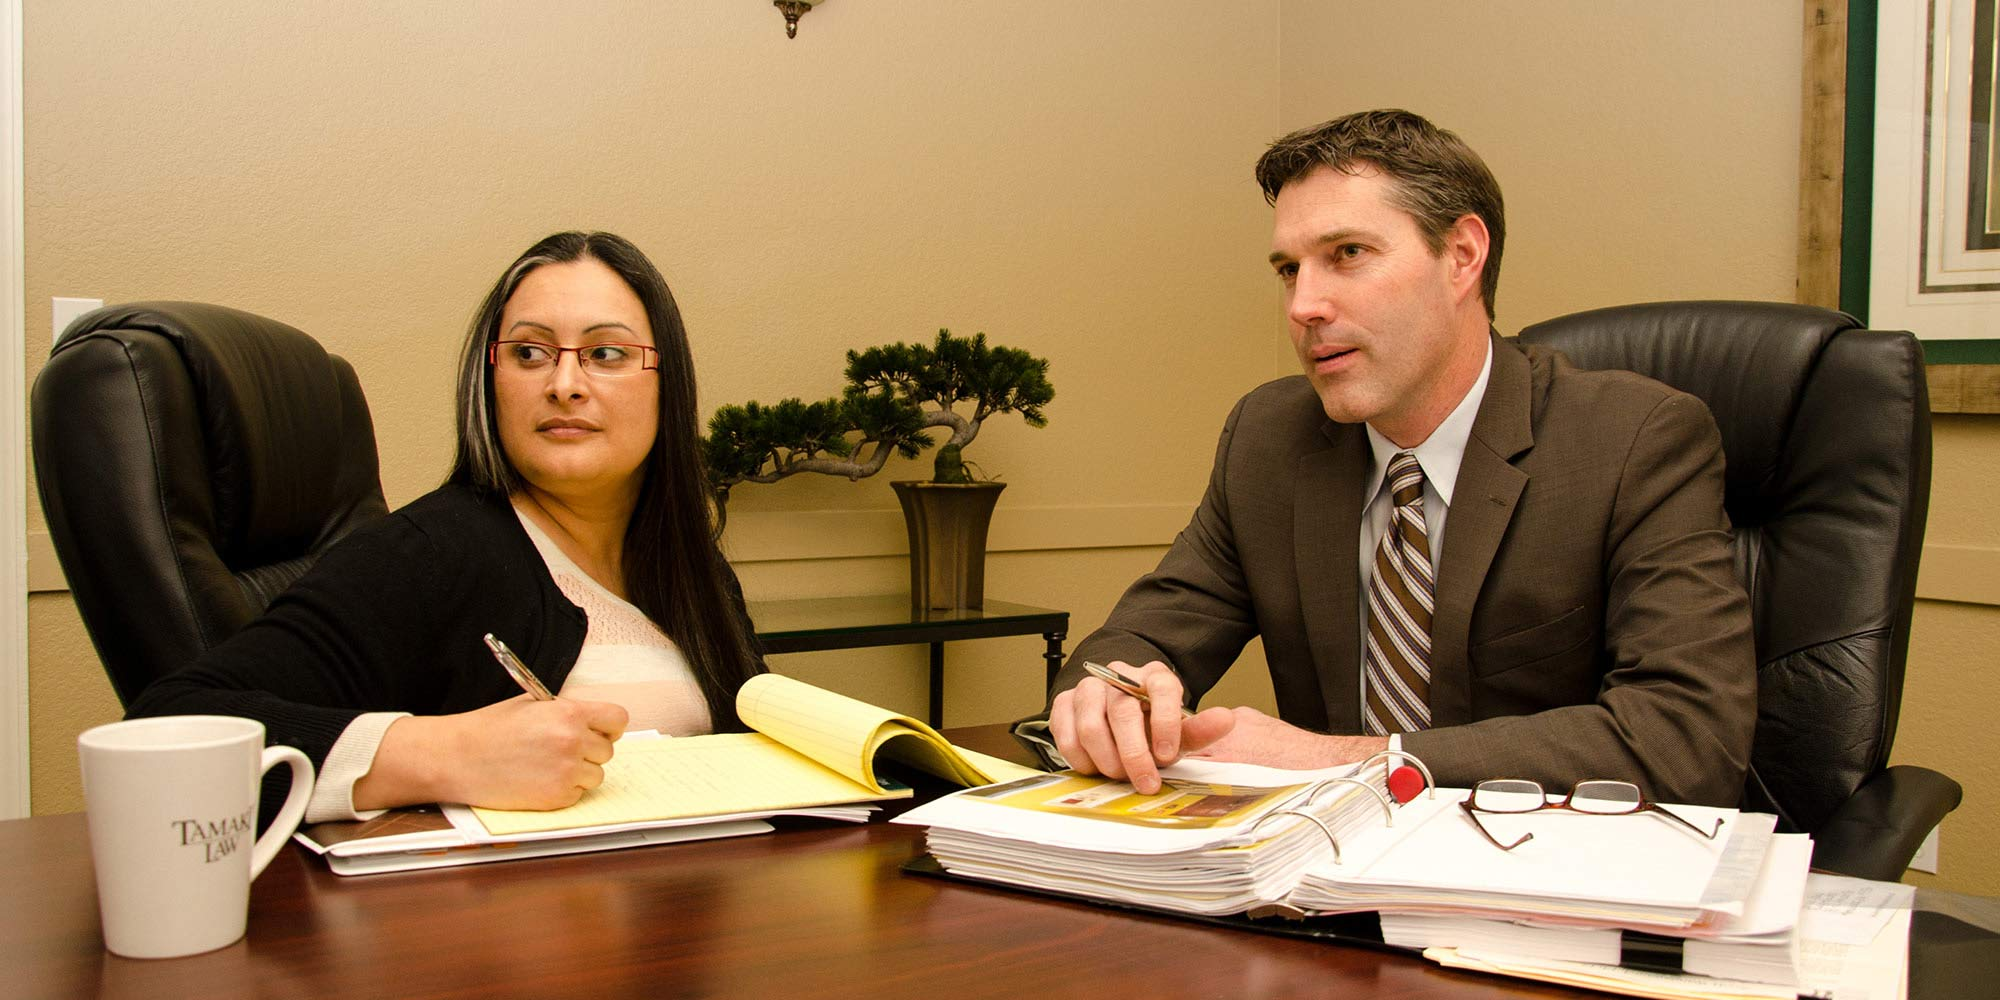 Jeff M. Kreutz and paralegal working together